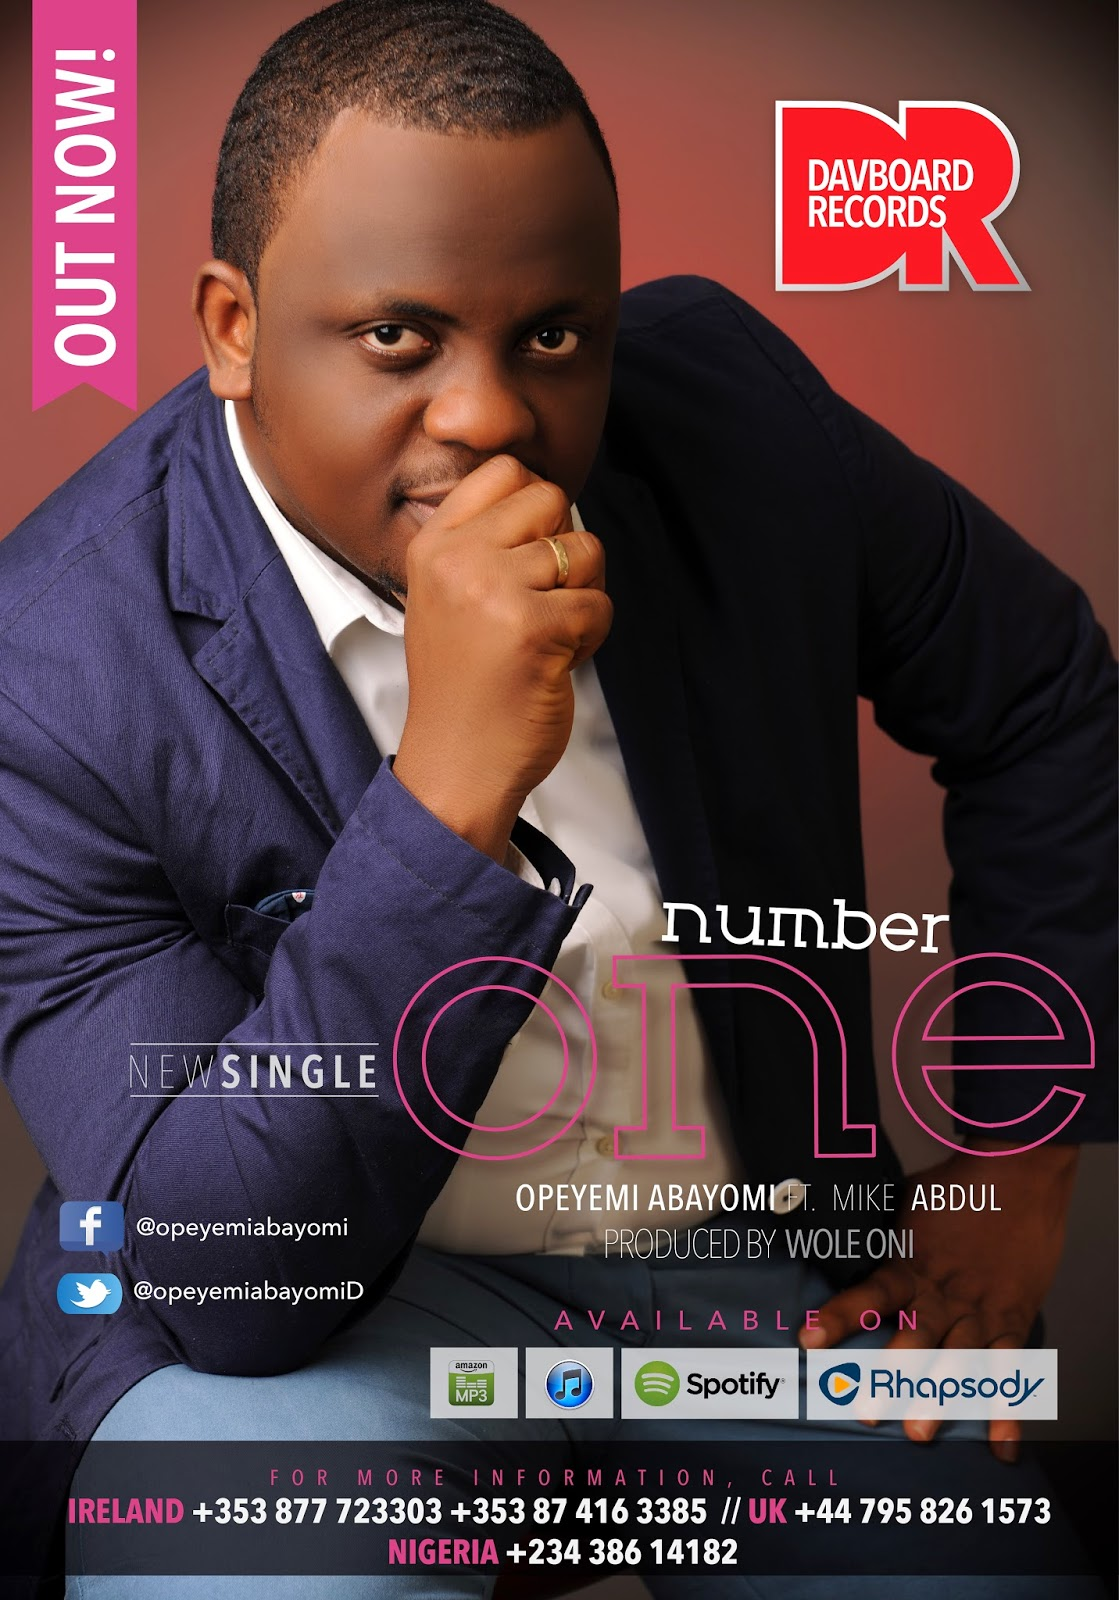 PREMIERE: OPEYEMI ABAYOMI - 'NUMBER ONE' FEAT  MIKE ABDUL (MIDNIGHT